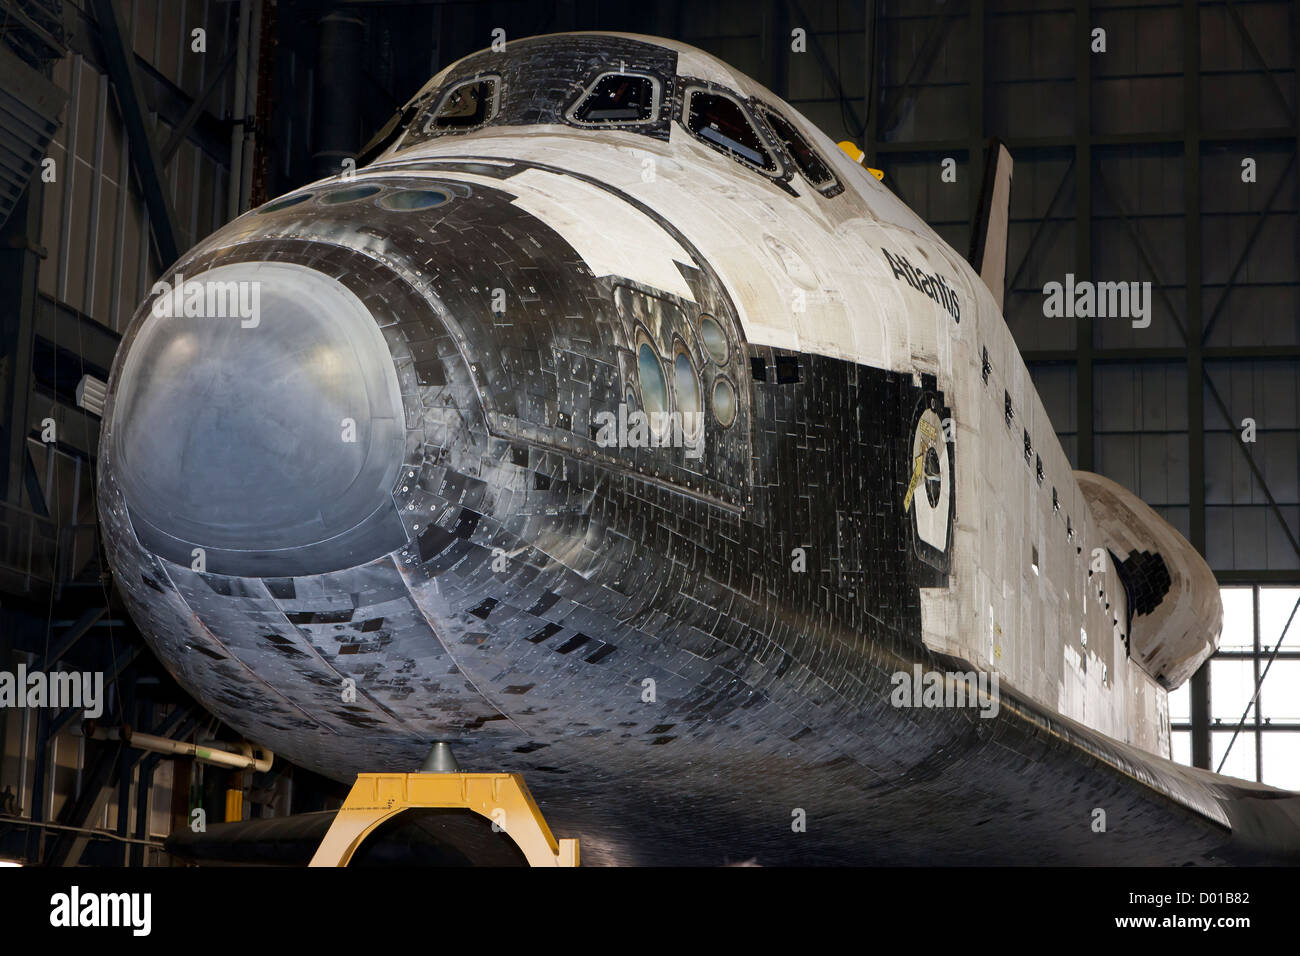 nasa space shuttle replacement vehicle - photo #40